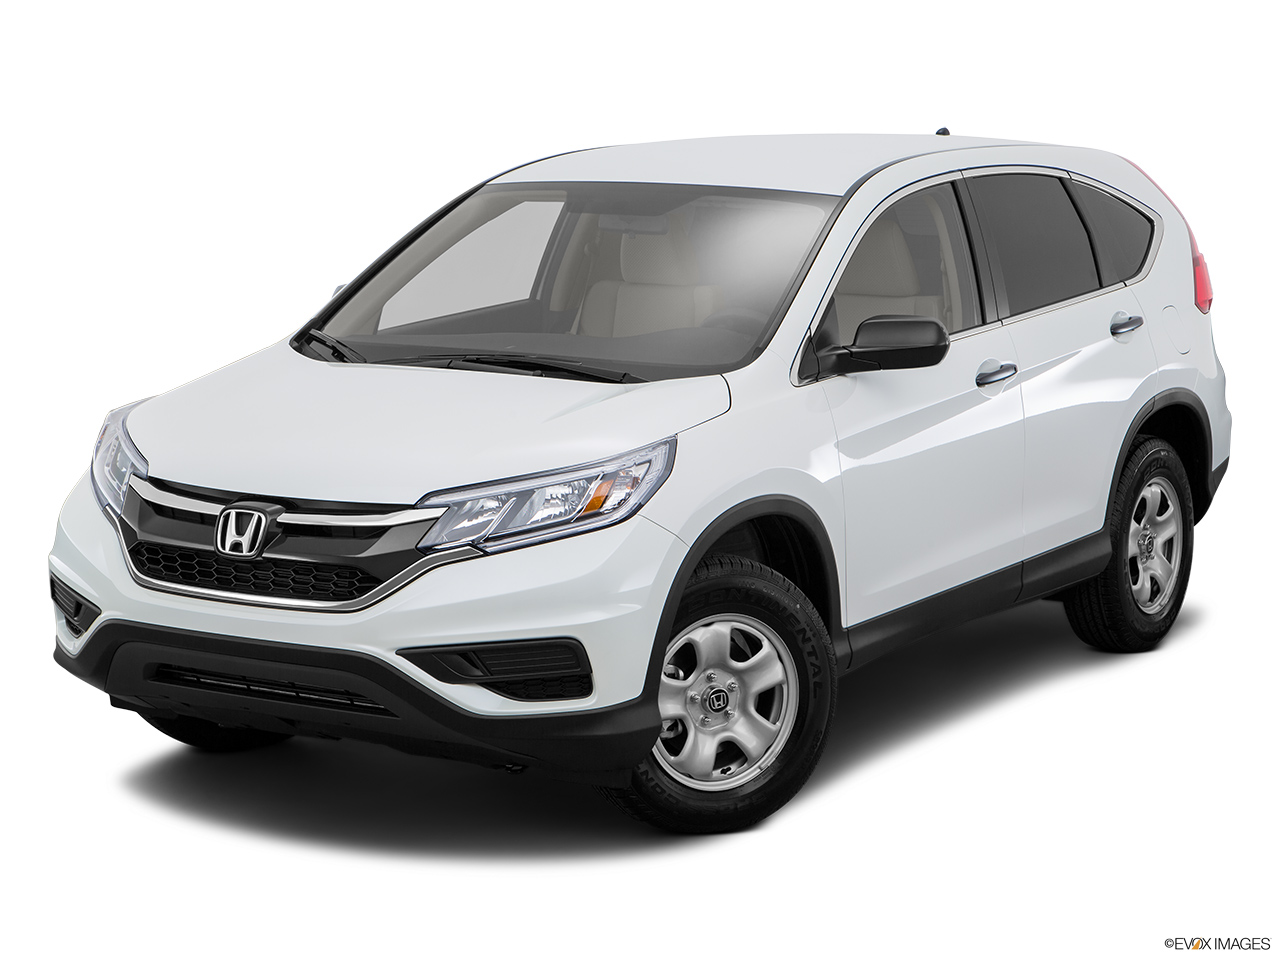 honda crv 2016 2 4 lx 2wd in saudi arabia new car prices. Black Bedroom Furniture Sets. Home Design Ideas